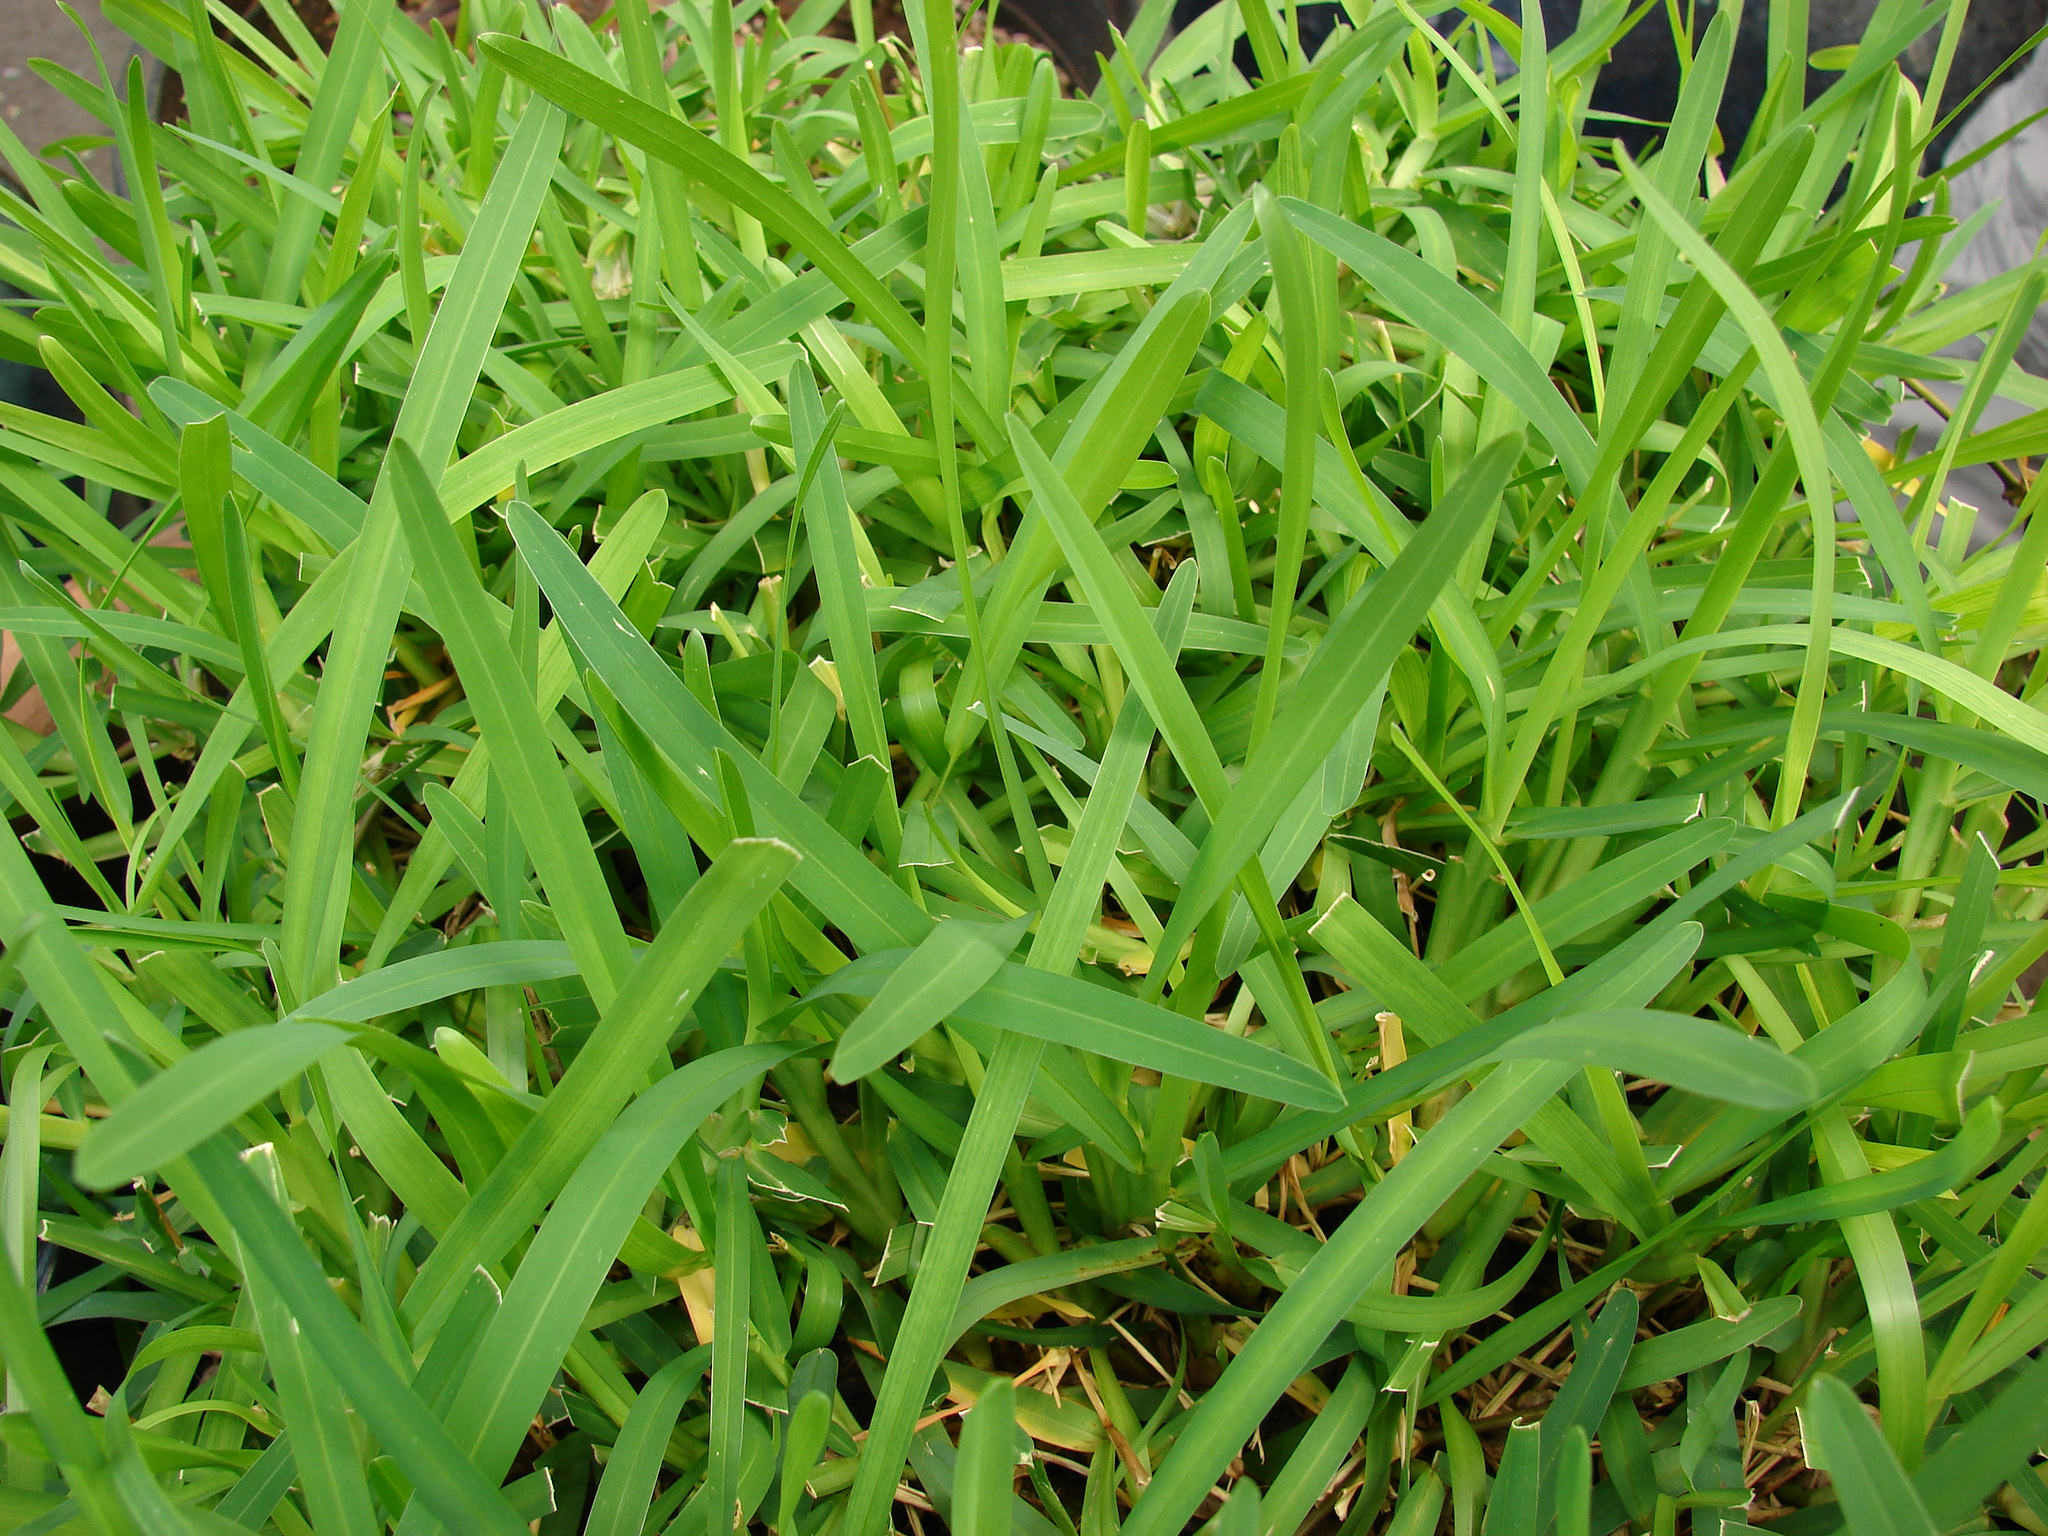 Types of lawn grass weeds - Centipede Grass